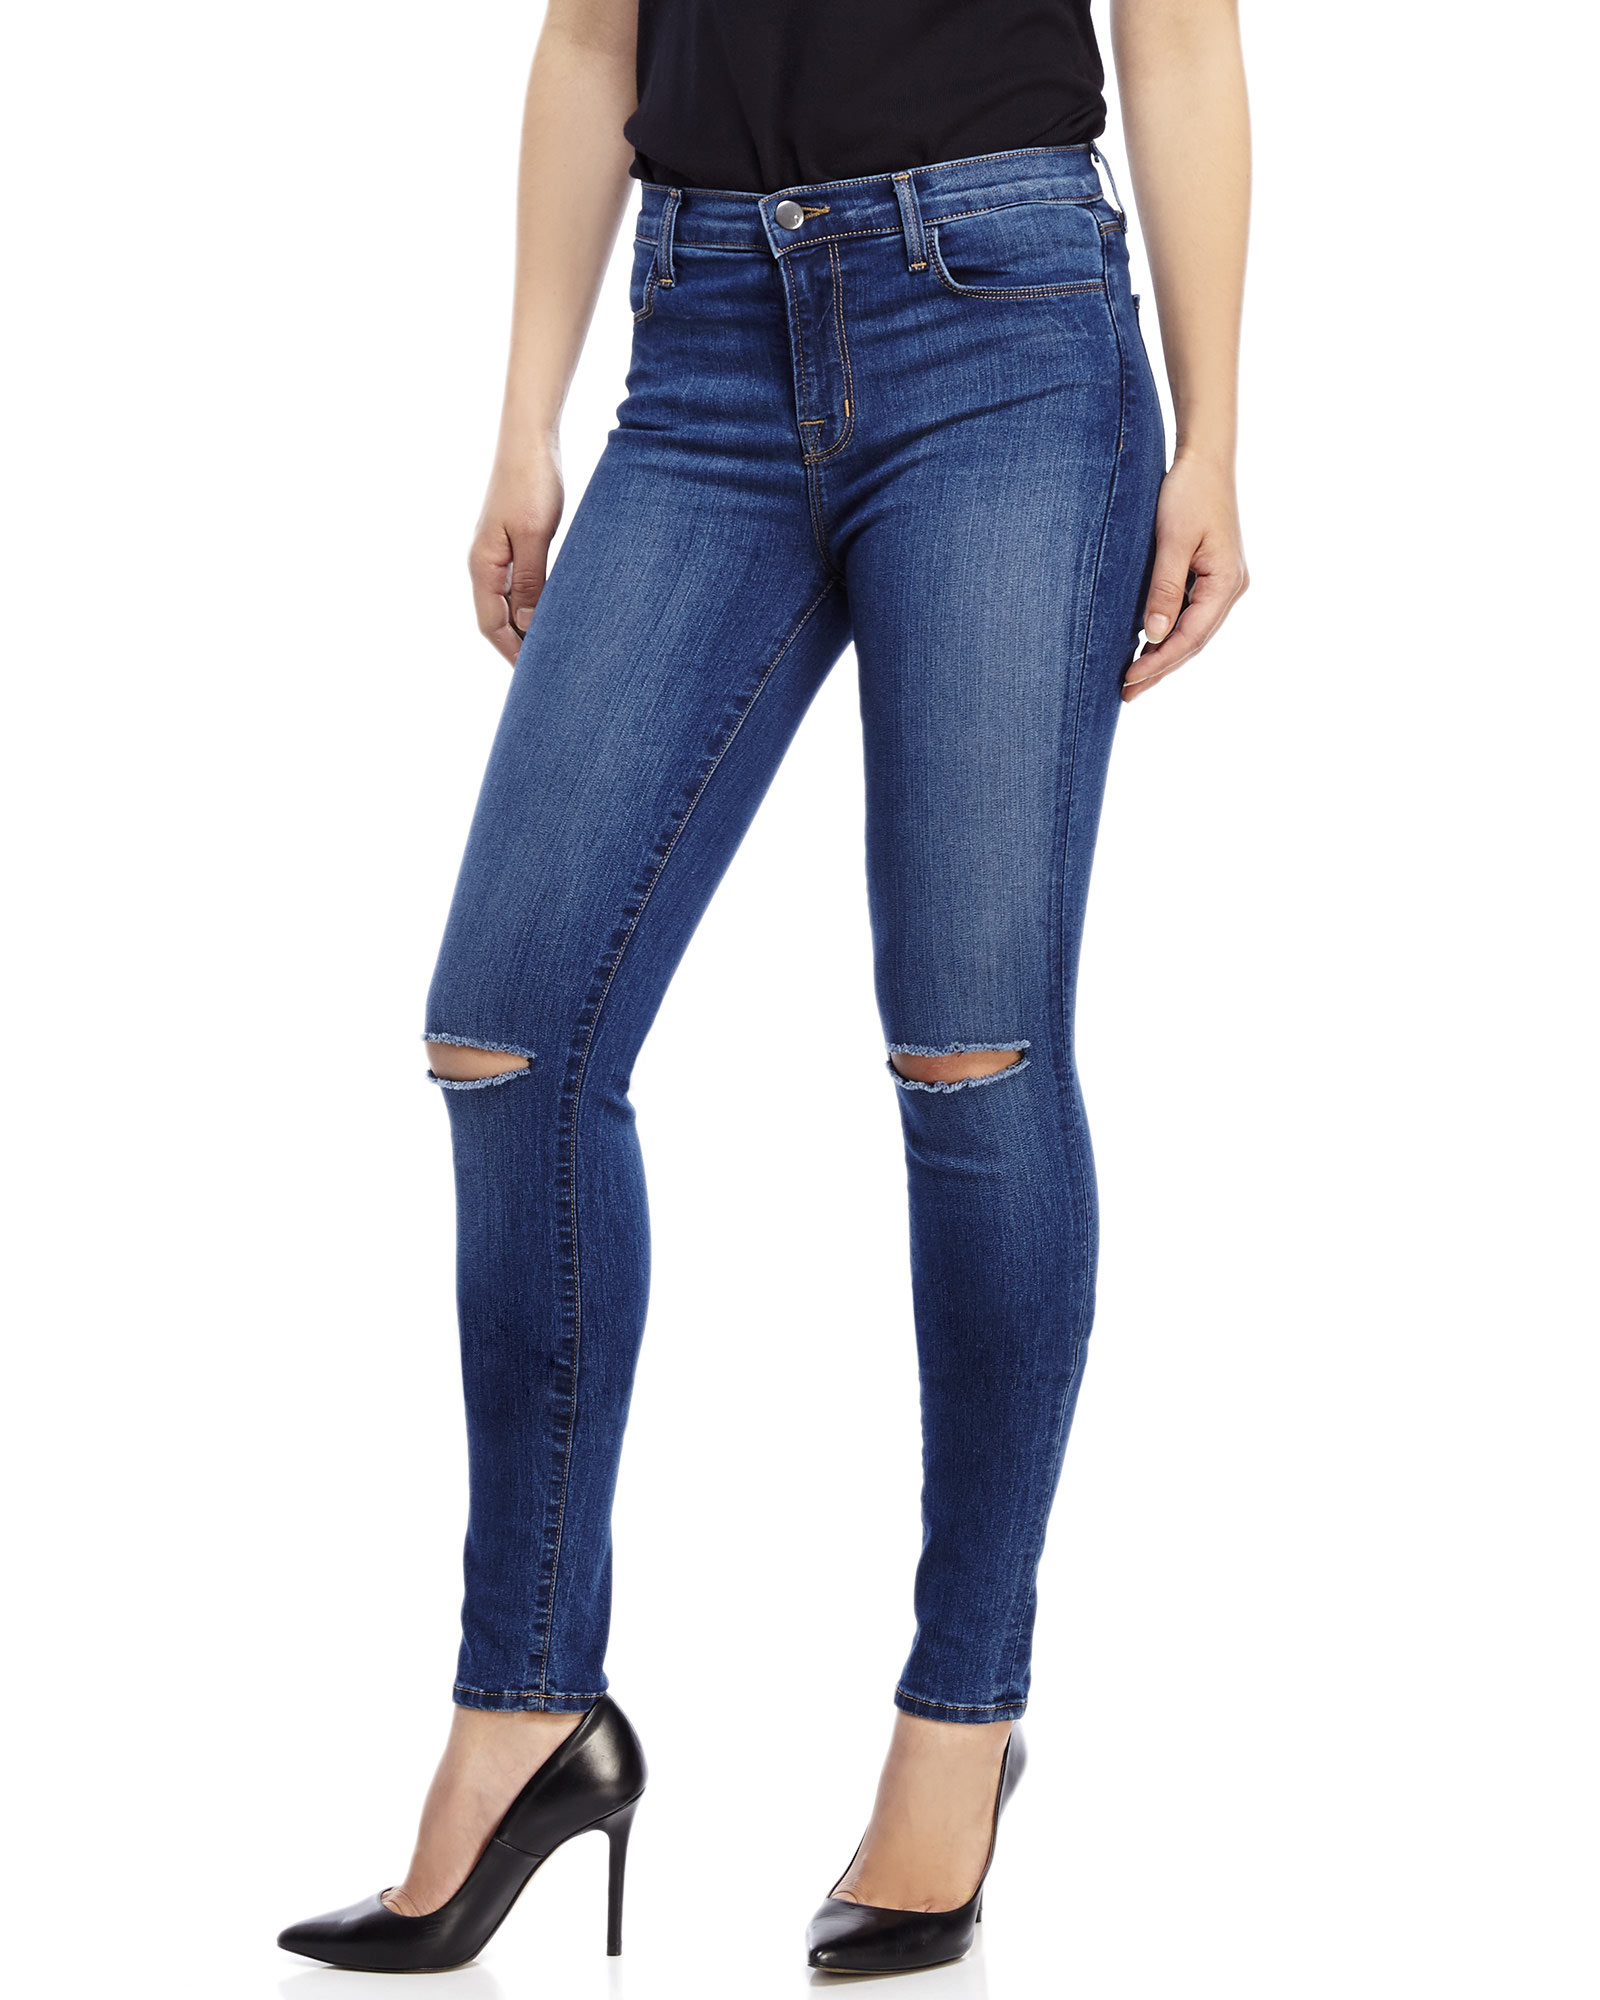 J brand Maria Distressed High-Rise Skinny Jeans in Blue   Lyst